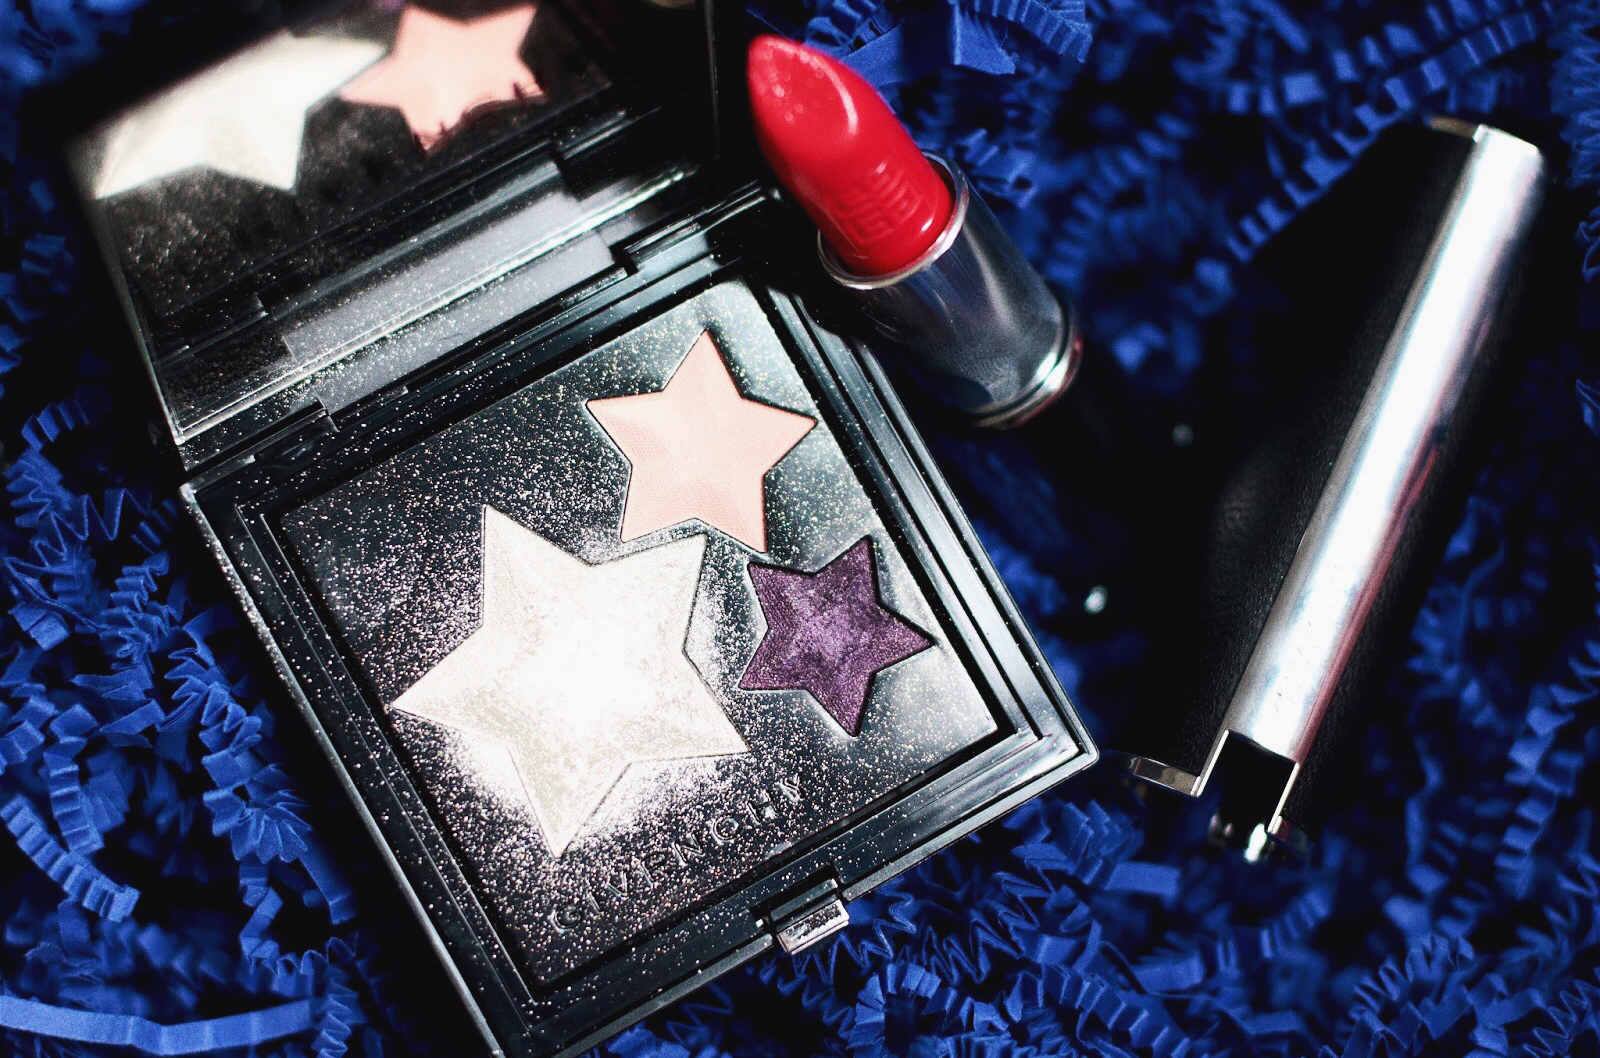 givenchy le prisme superstellar maquillage 321 heroic red avis test swatch